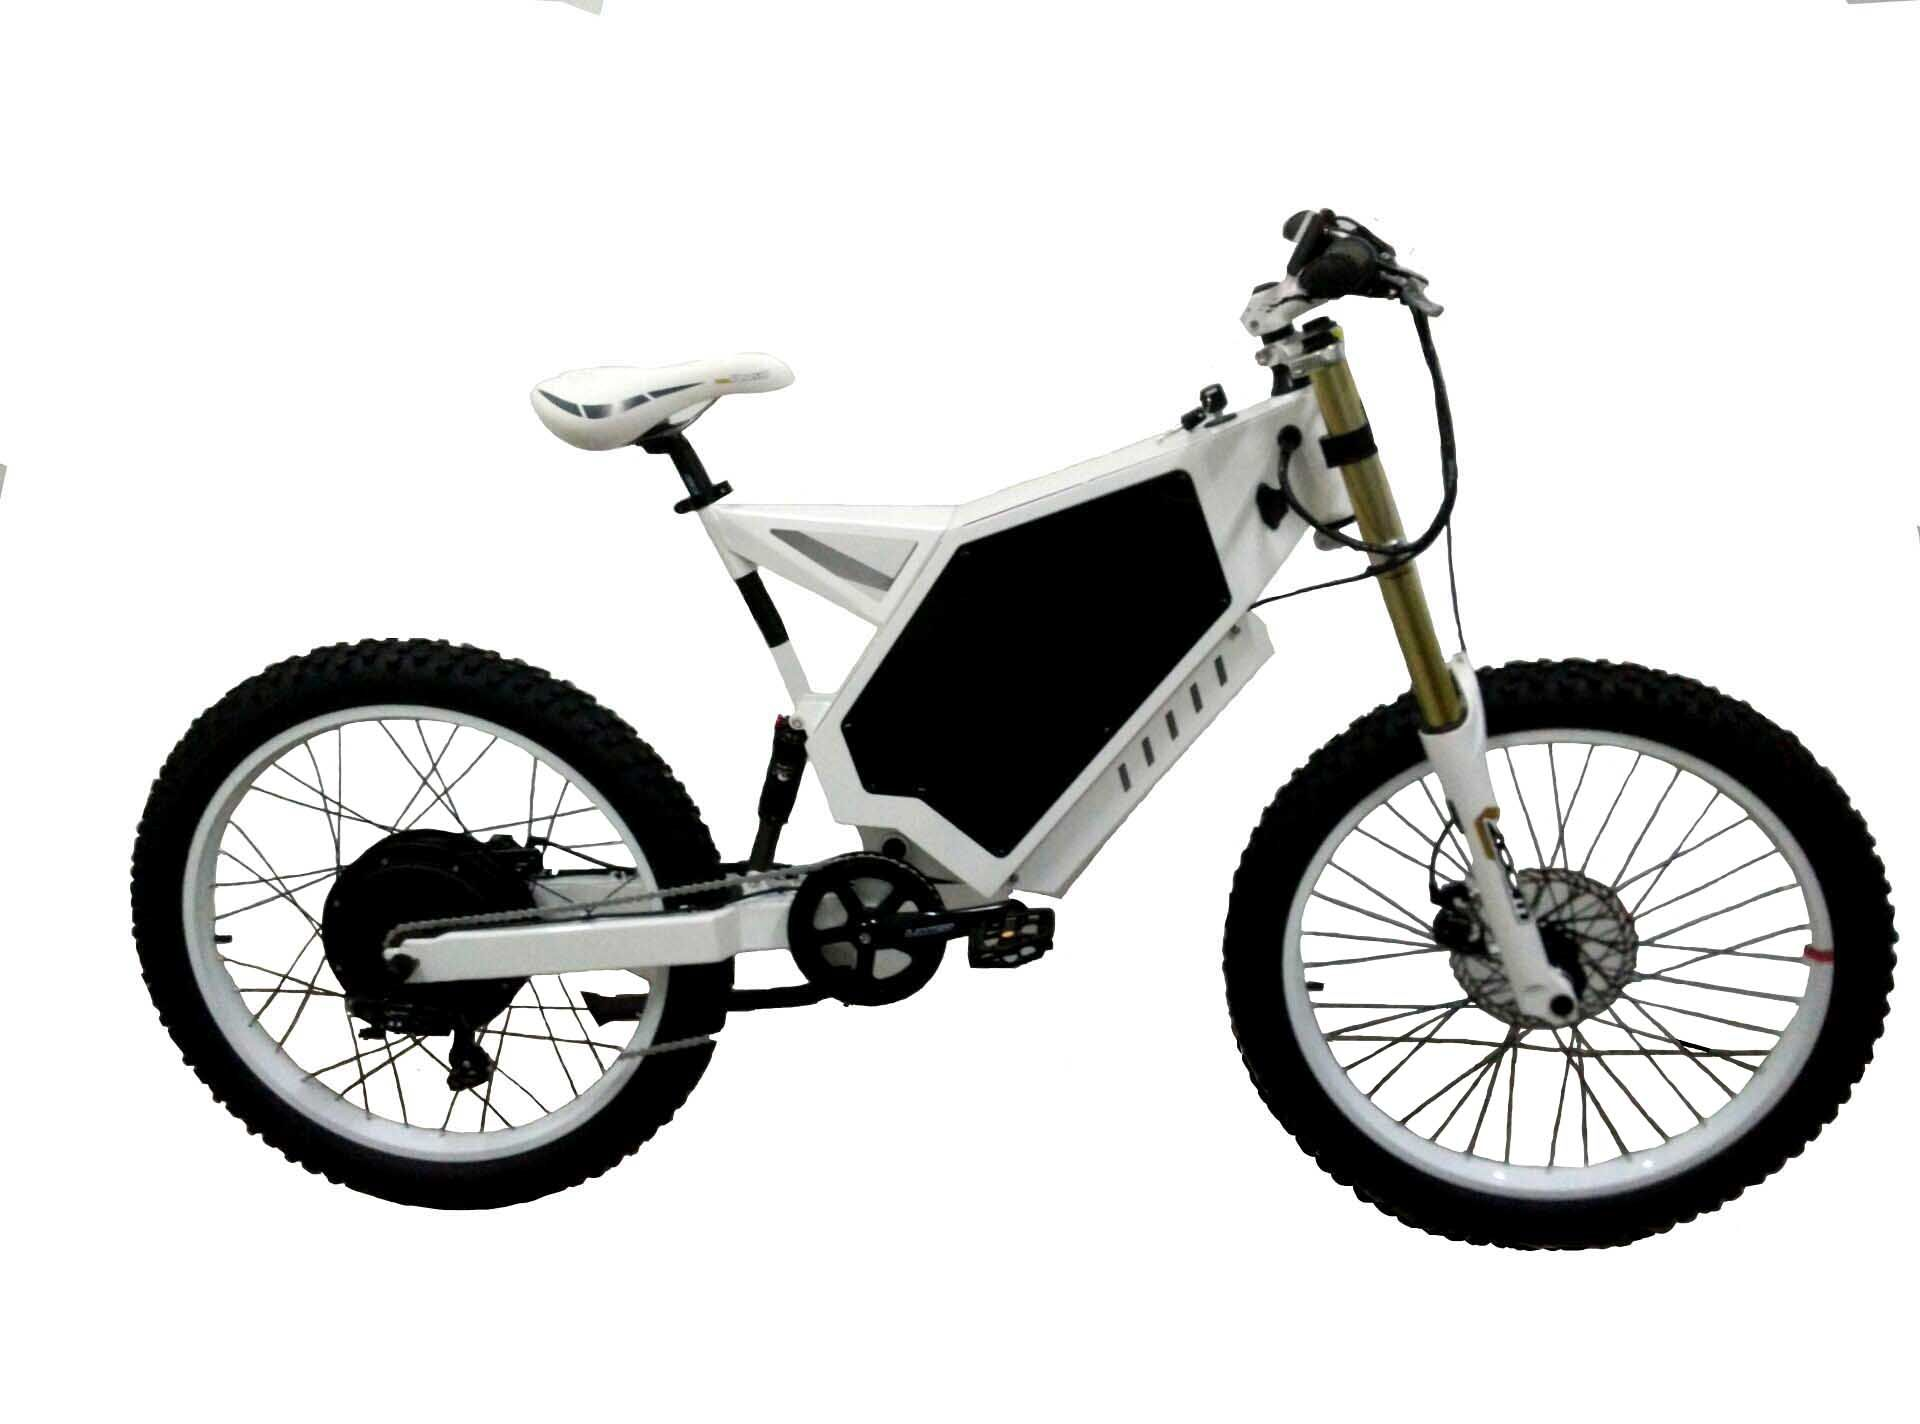 Stealth Bomber Electric Bike With Its High Speed And Good Ability